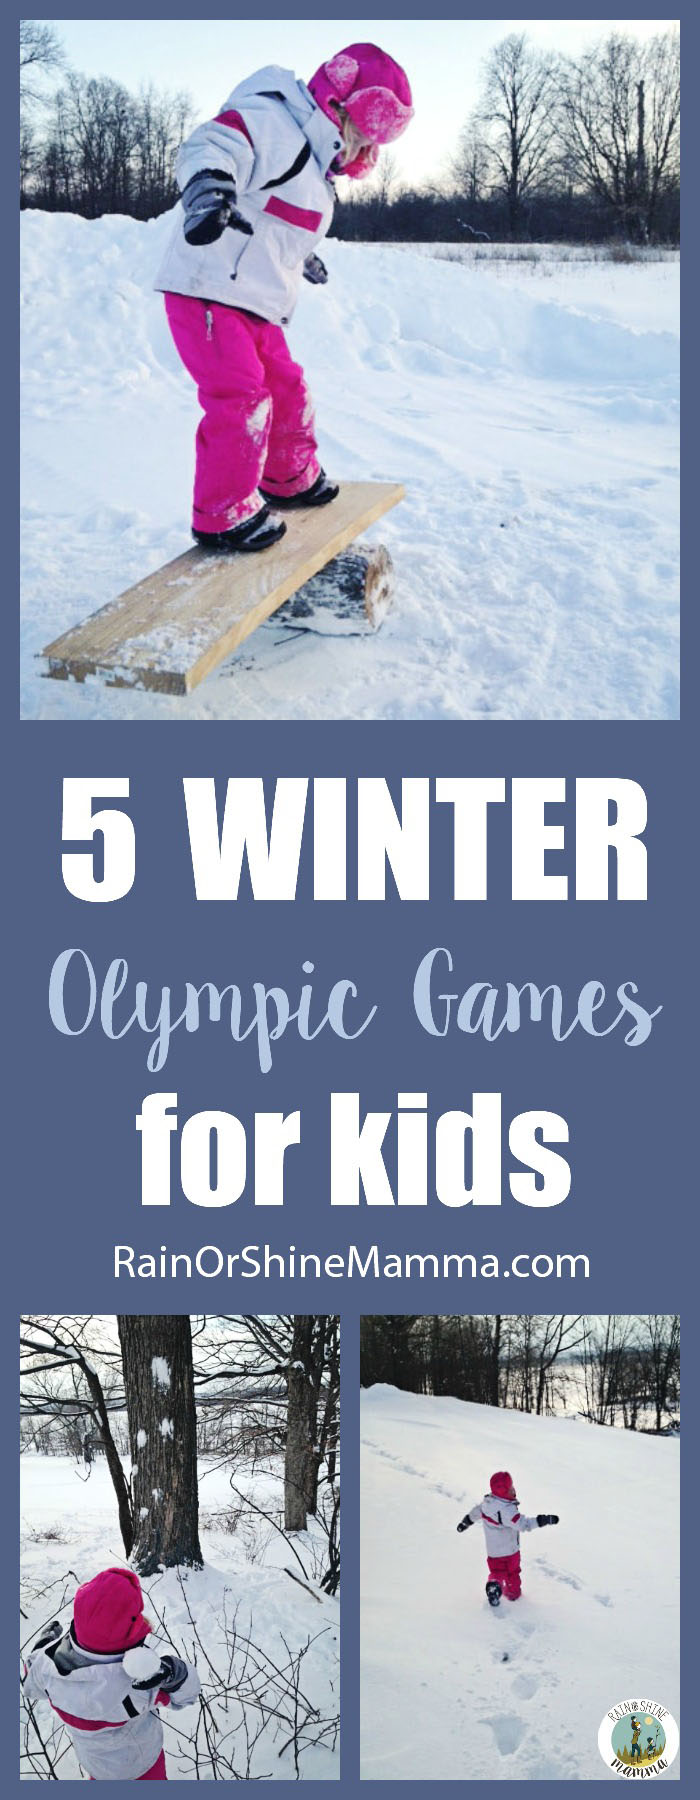 5 winter olympic games for kids that can be done in your. Black Bedroom Furniture Sets. Home Design Ideas